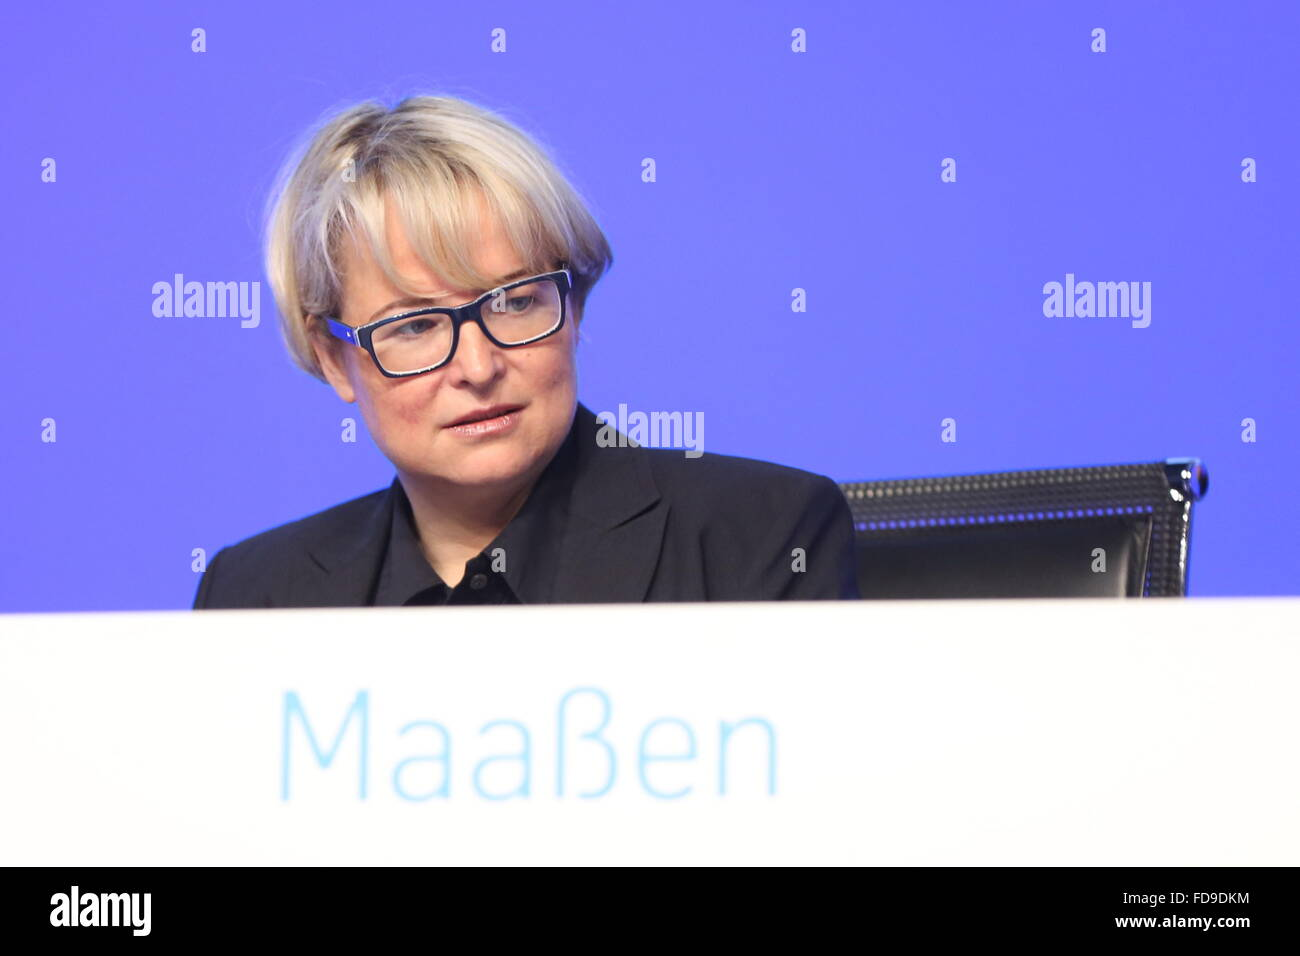 Bochum, Germany. 29th January, 2016. Sabine Maassen, ThyssenKrupp AG annual general meeting, Bochum, Germany, 29.01.2016. - Stock Image